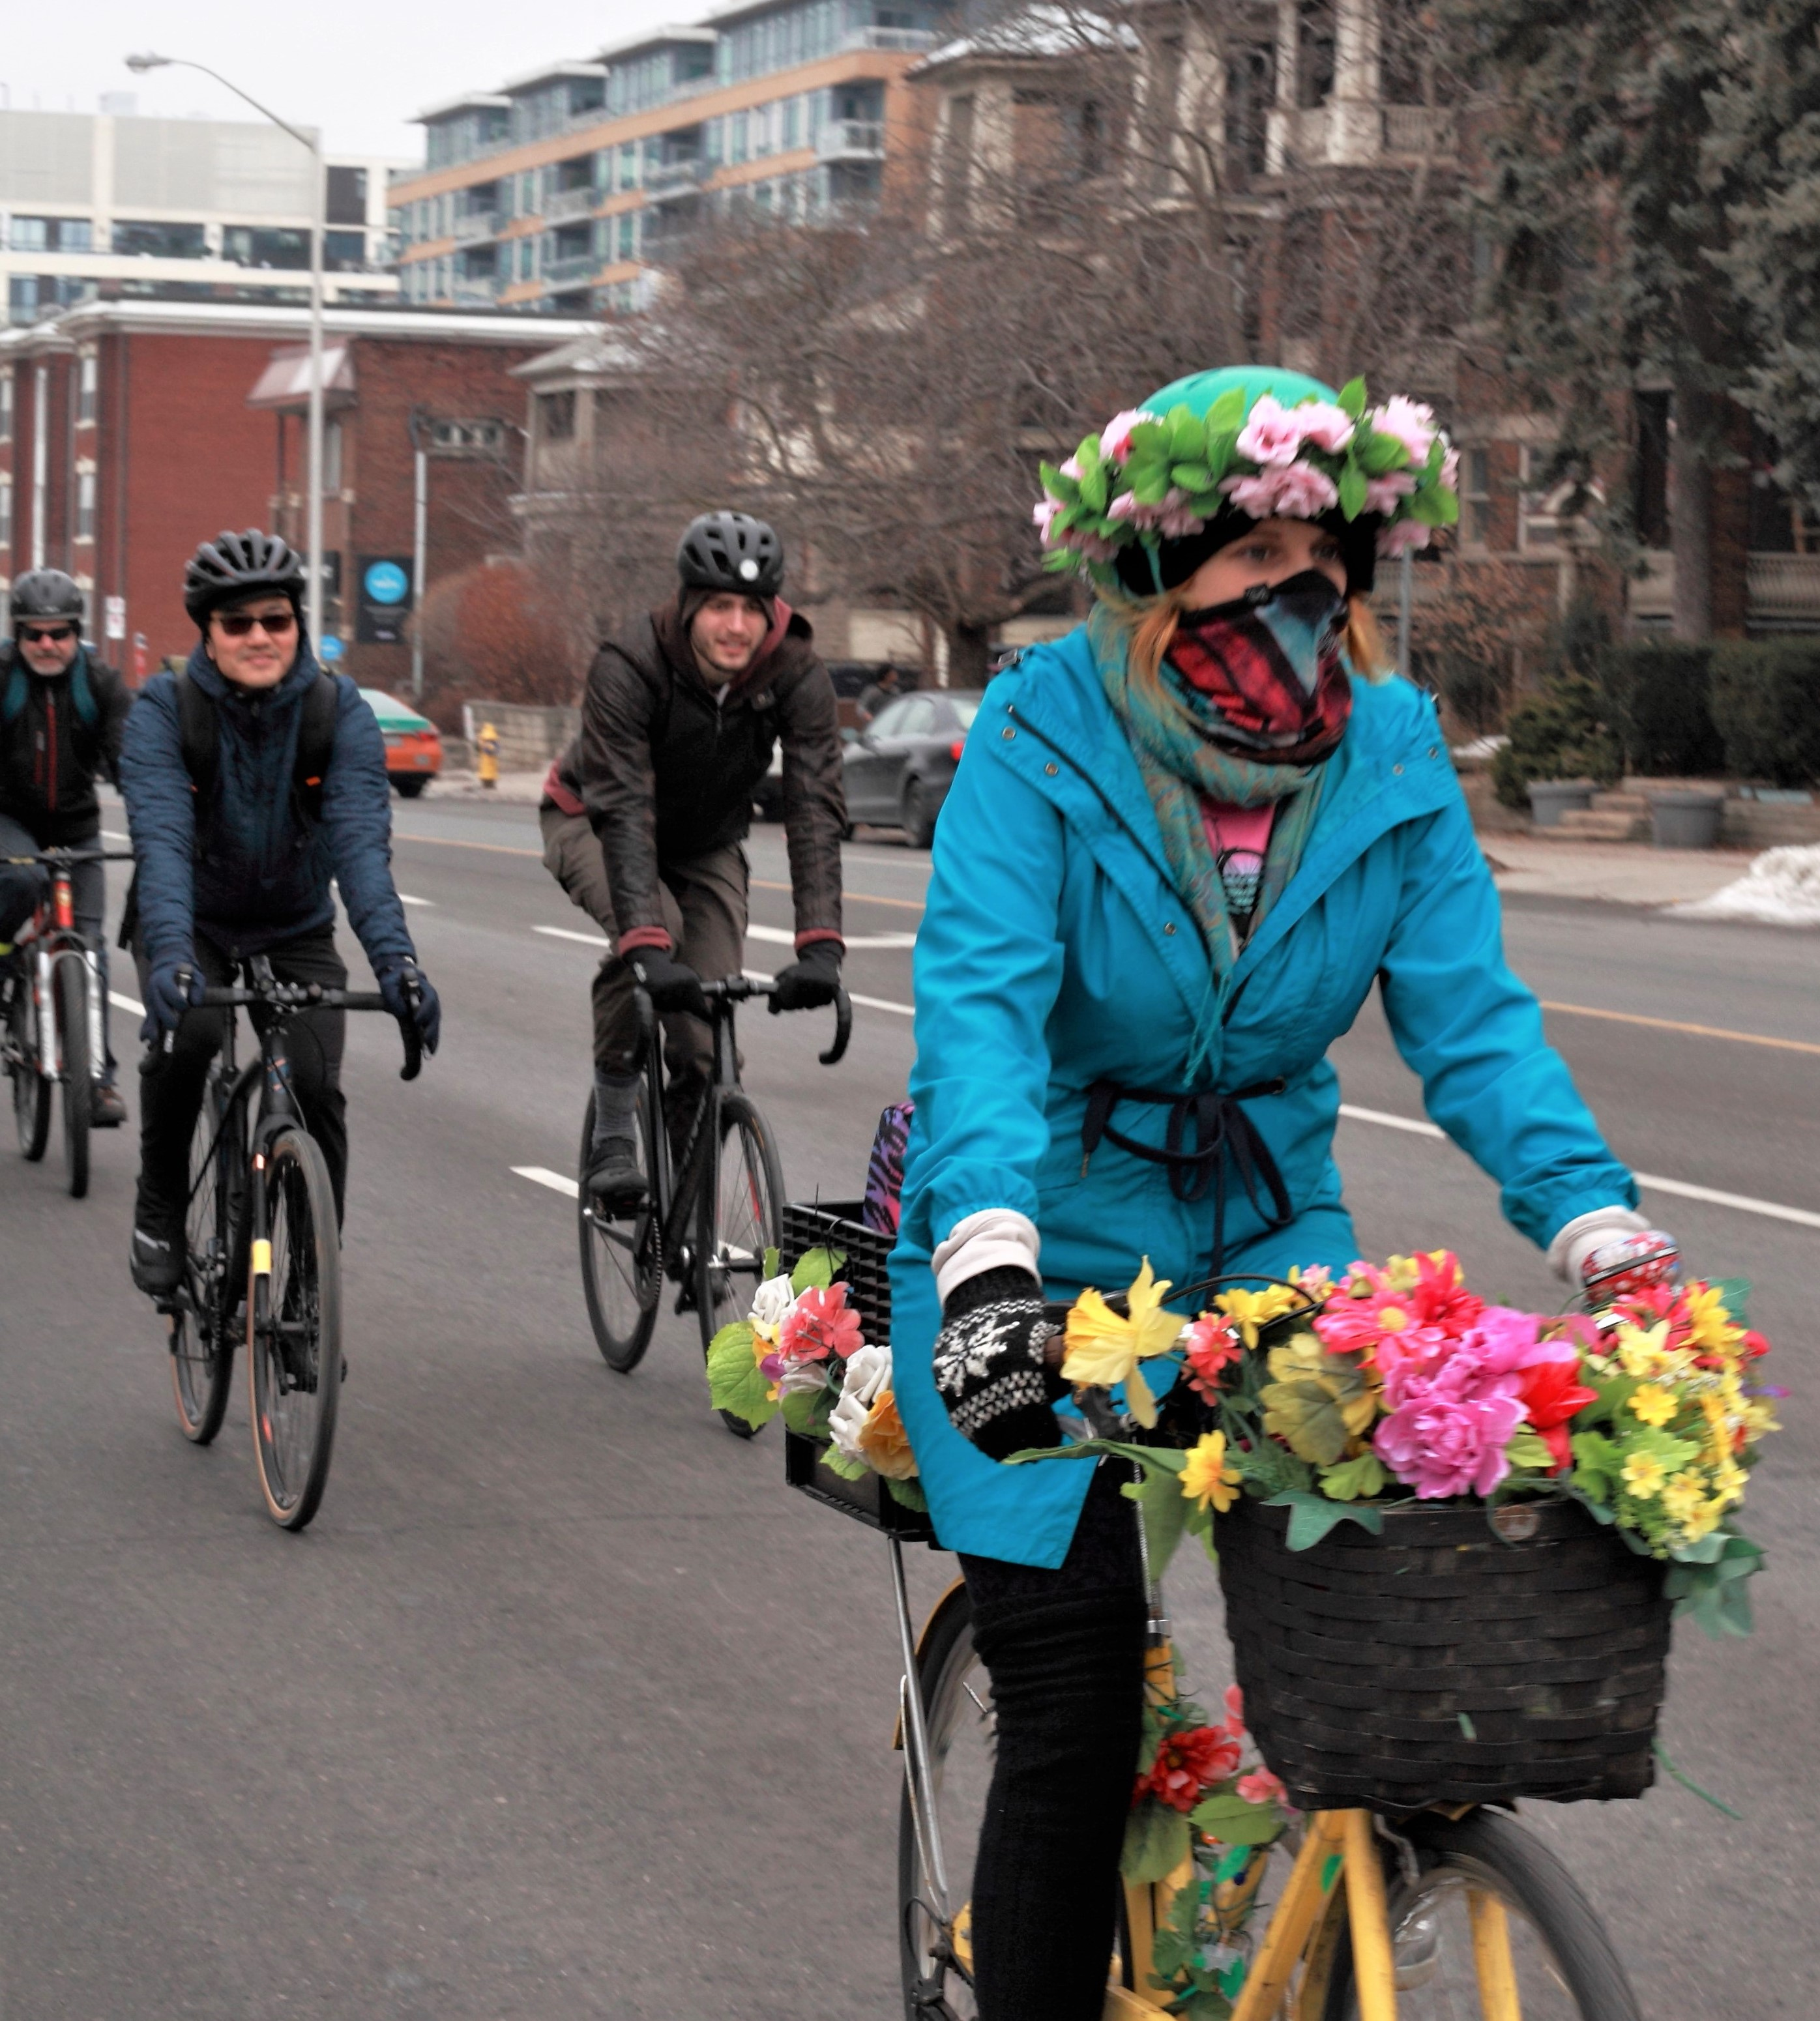 Rider with flowers on their bike